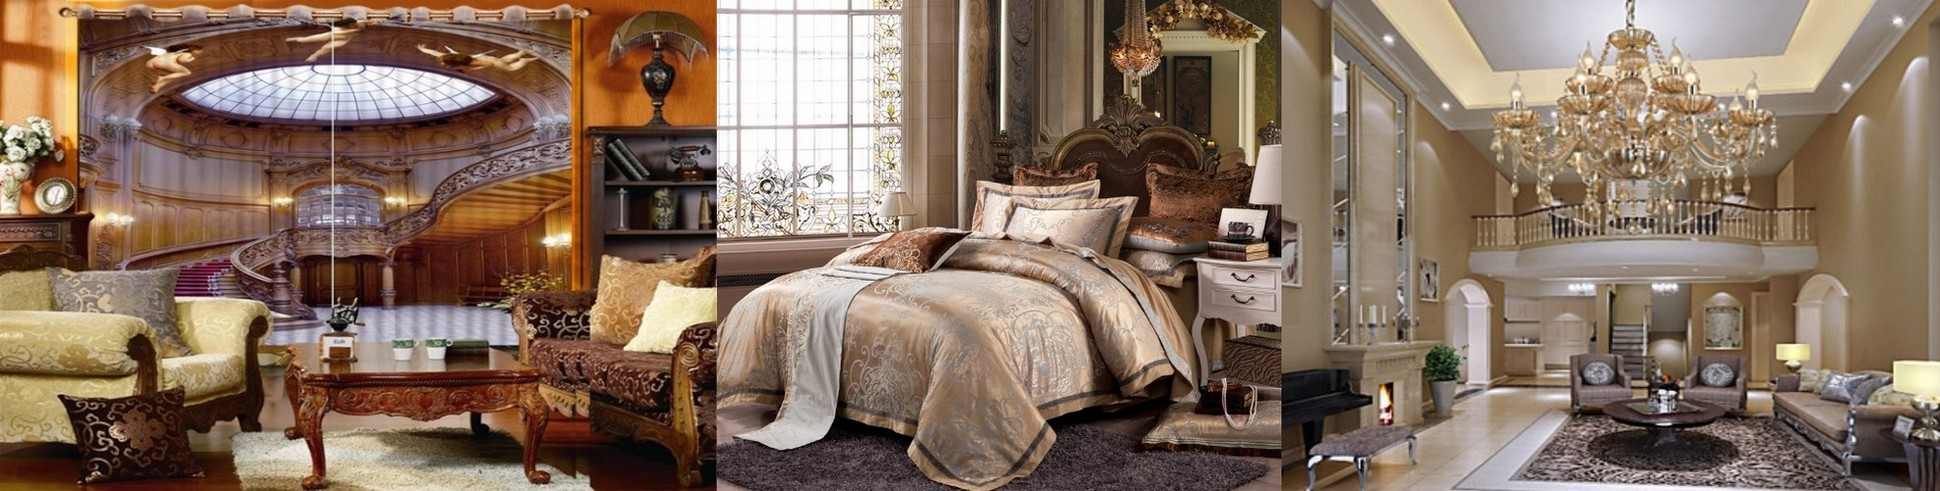 linge de maison prestige luxe. Black Bedroom Furniture Sets. Home Design Ideas